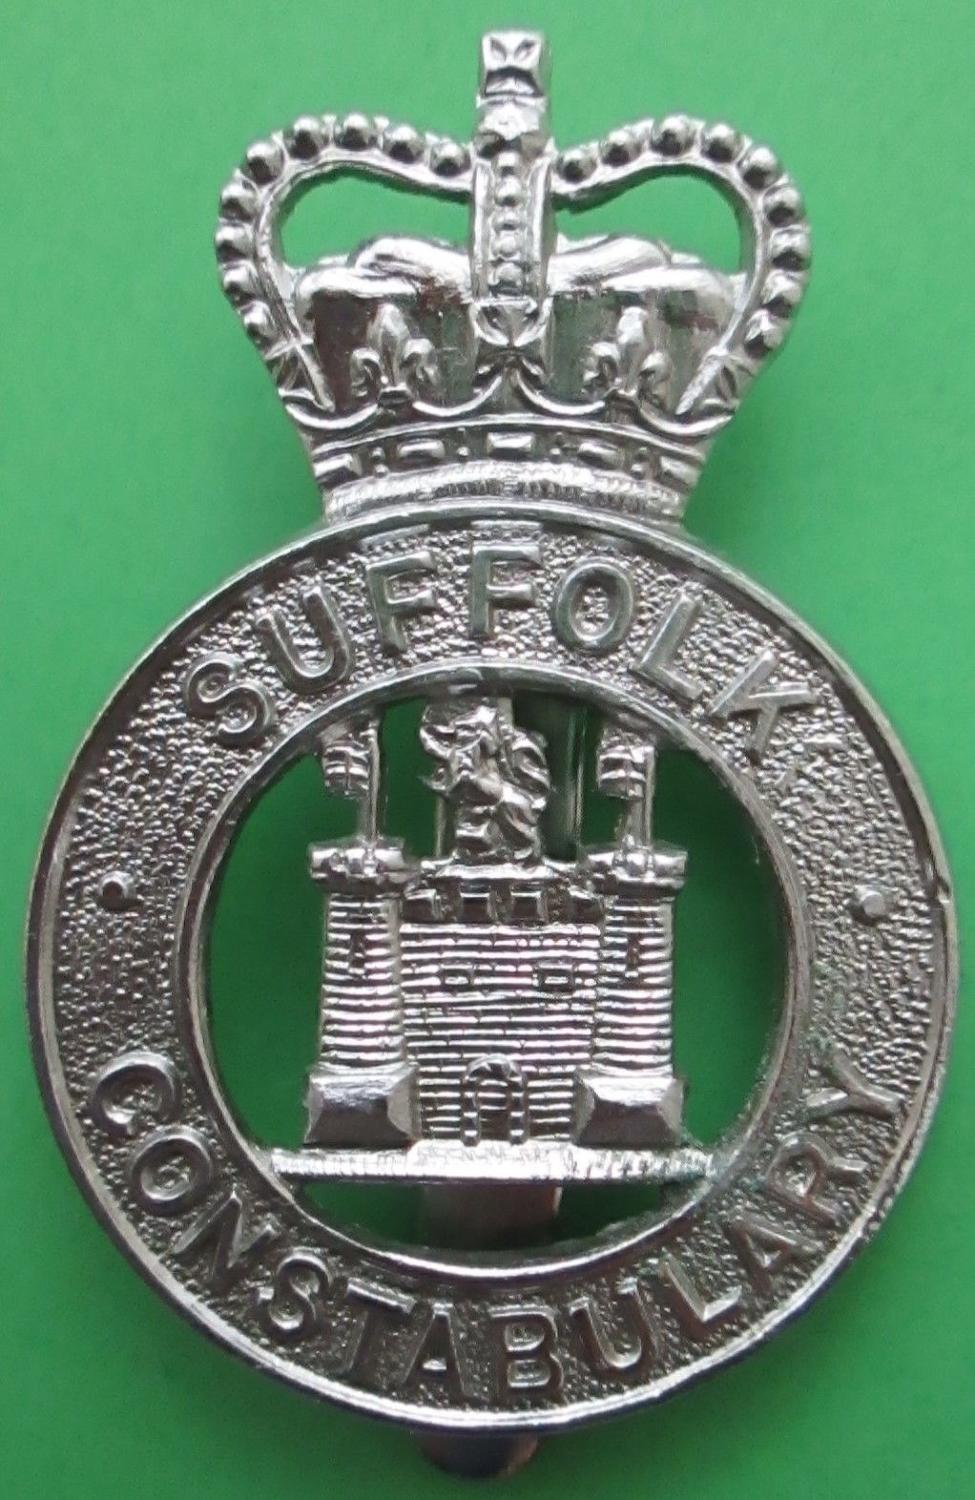 A SUFFOLK CONSTABULARY BADGE